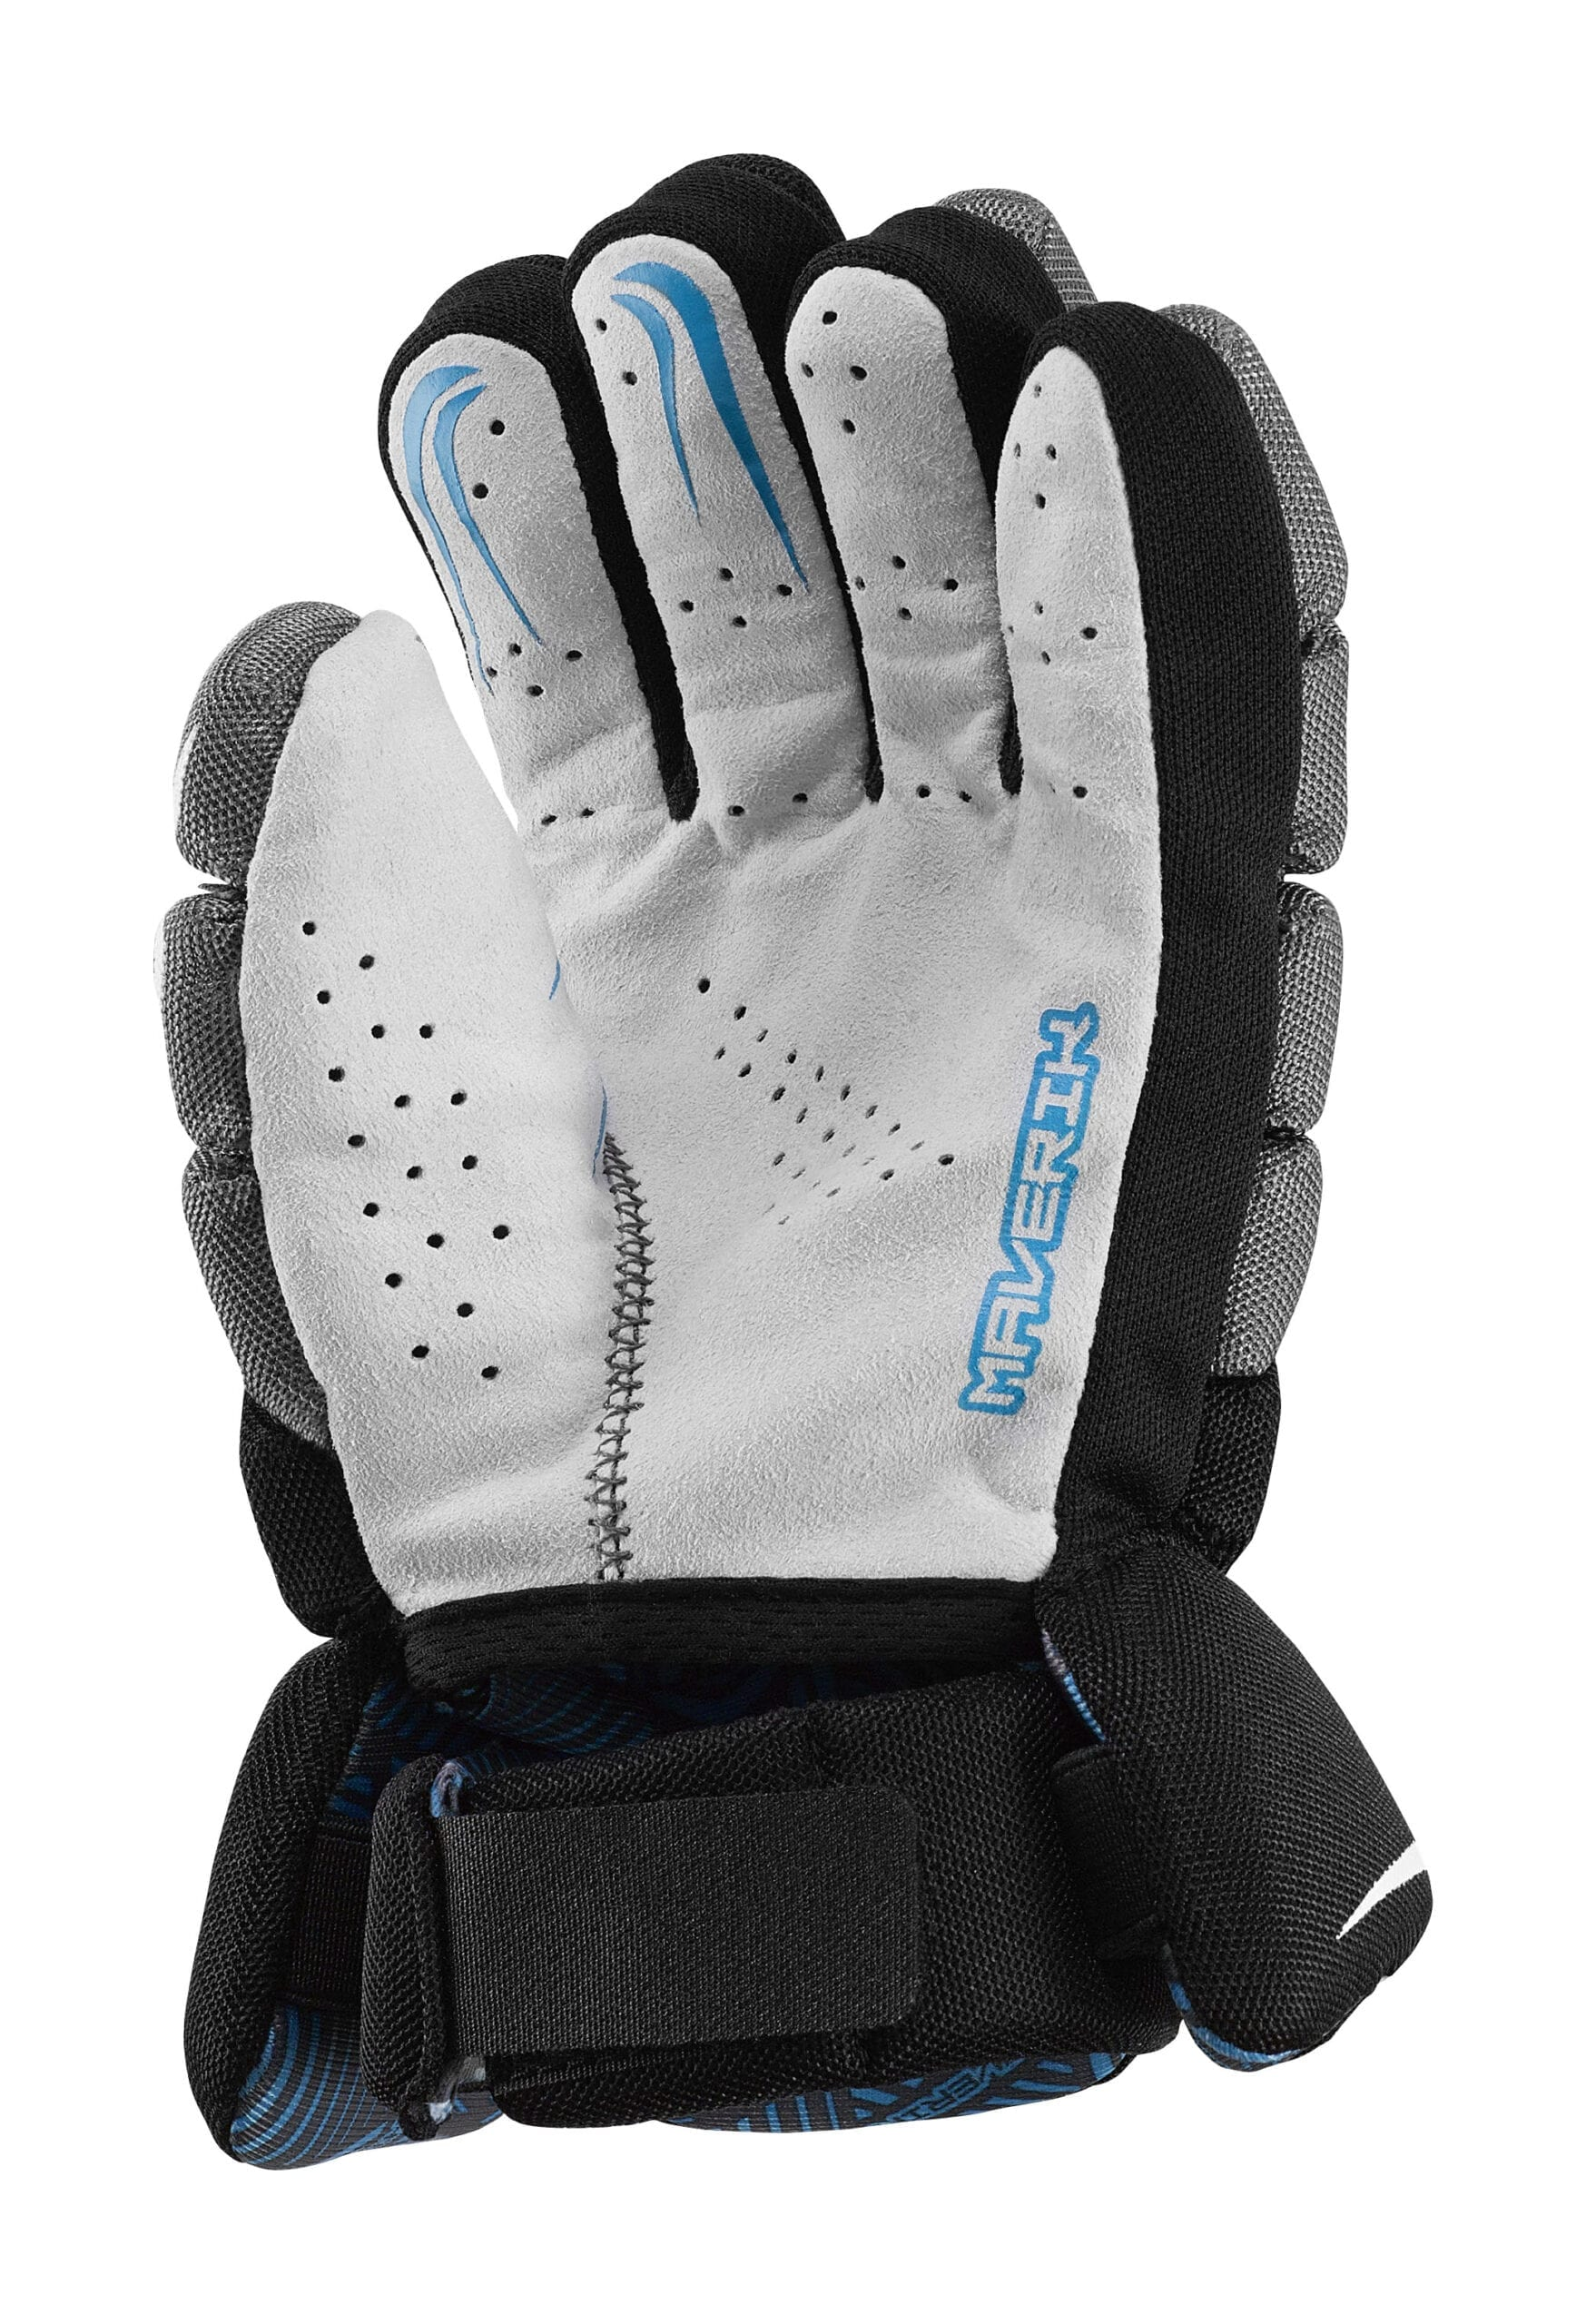 CHARGER-GLOVE_PROTECTIVE__BLACK_Palm-scaled-1.jpg